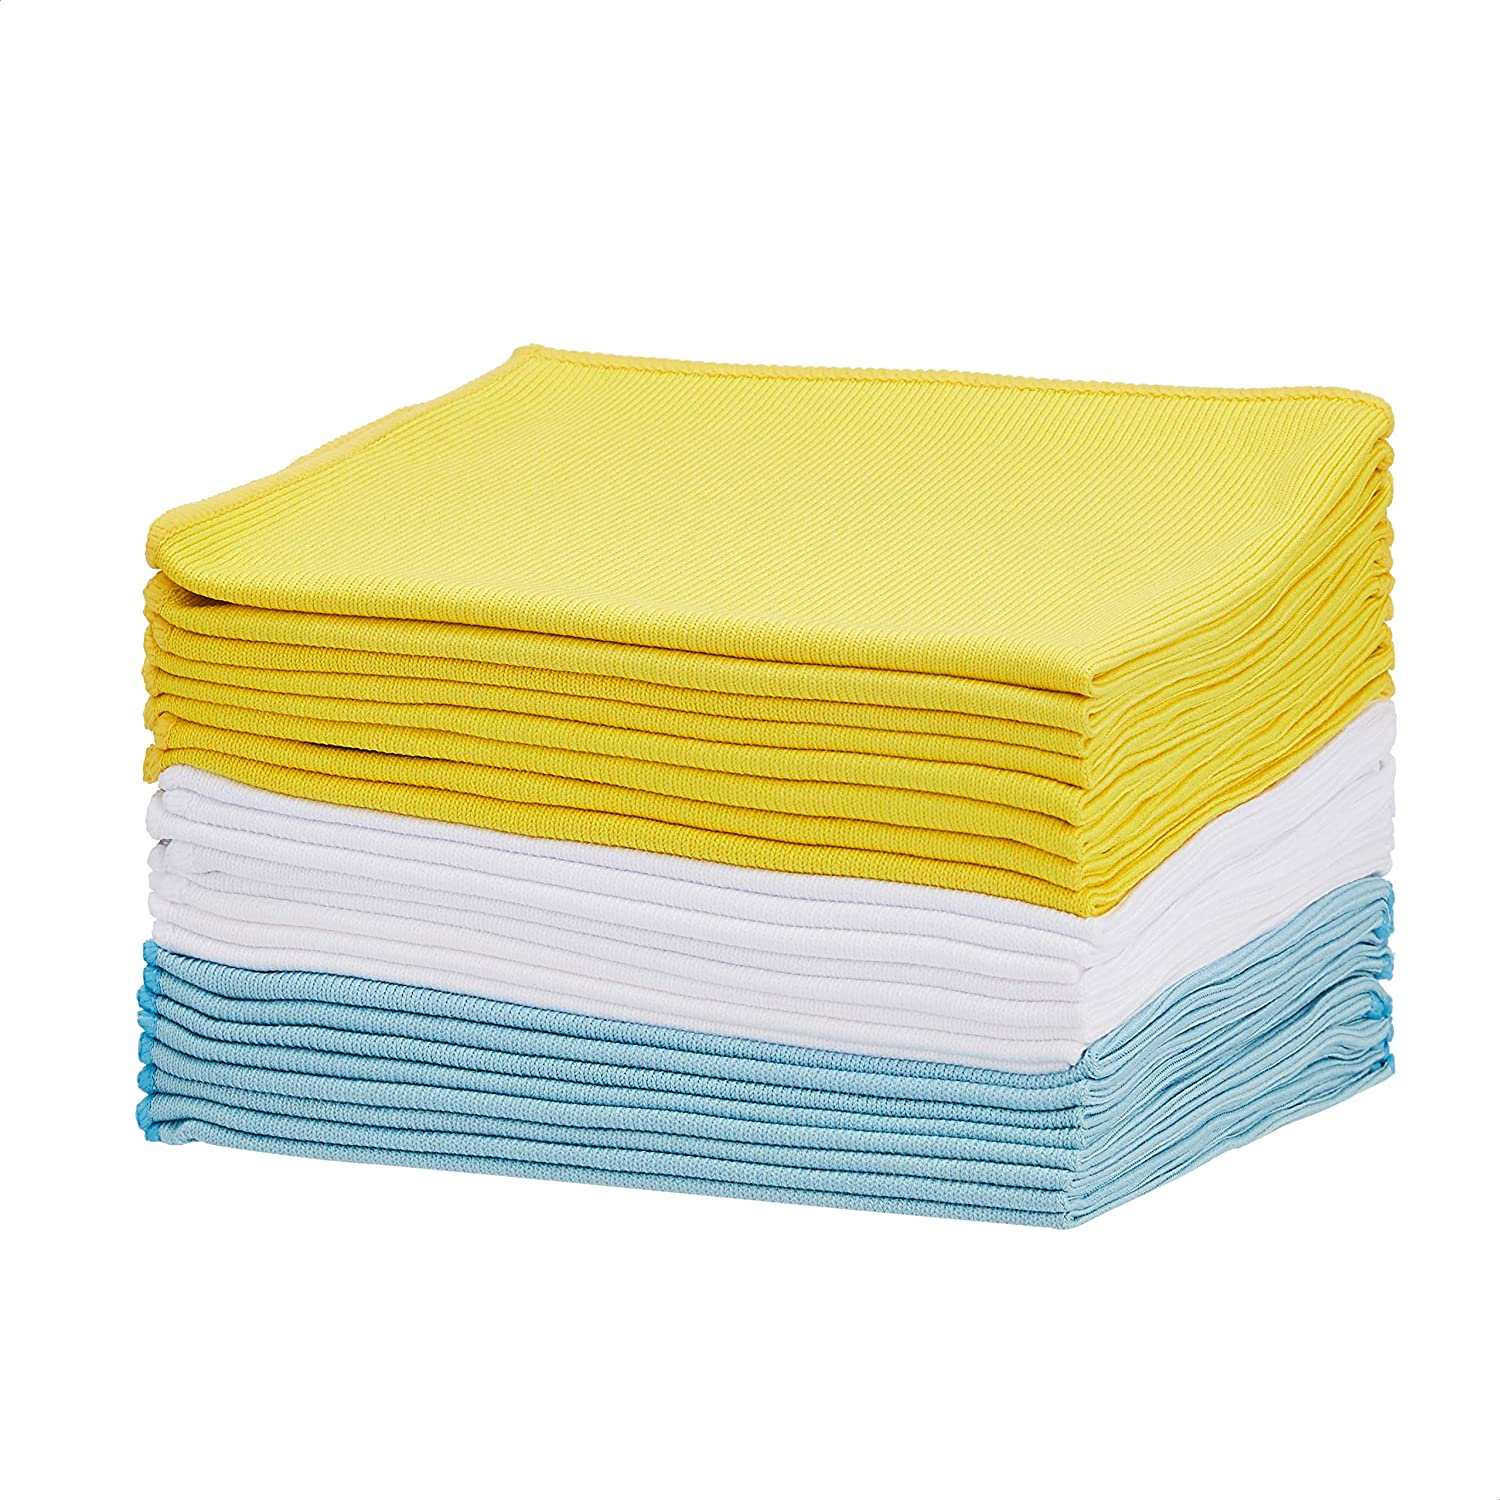 AmazonBasics Blue, Yellow and White Microfiber Glass Fabric Cleaning Cloth, 24-Pack